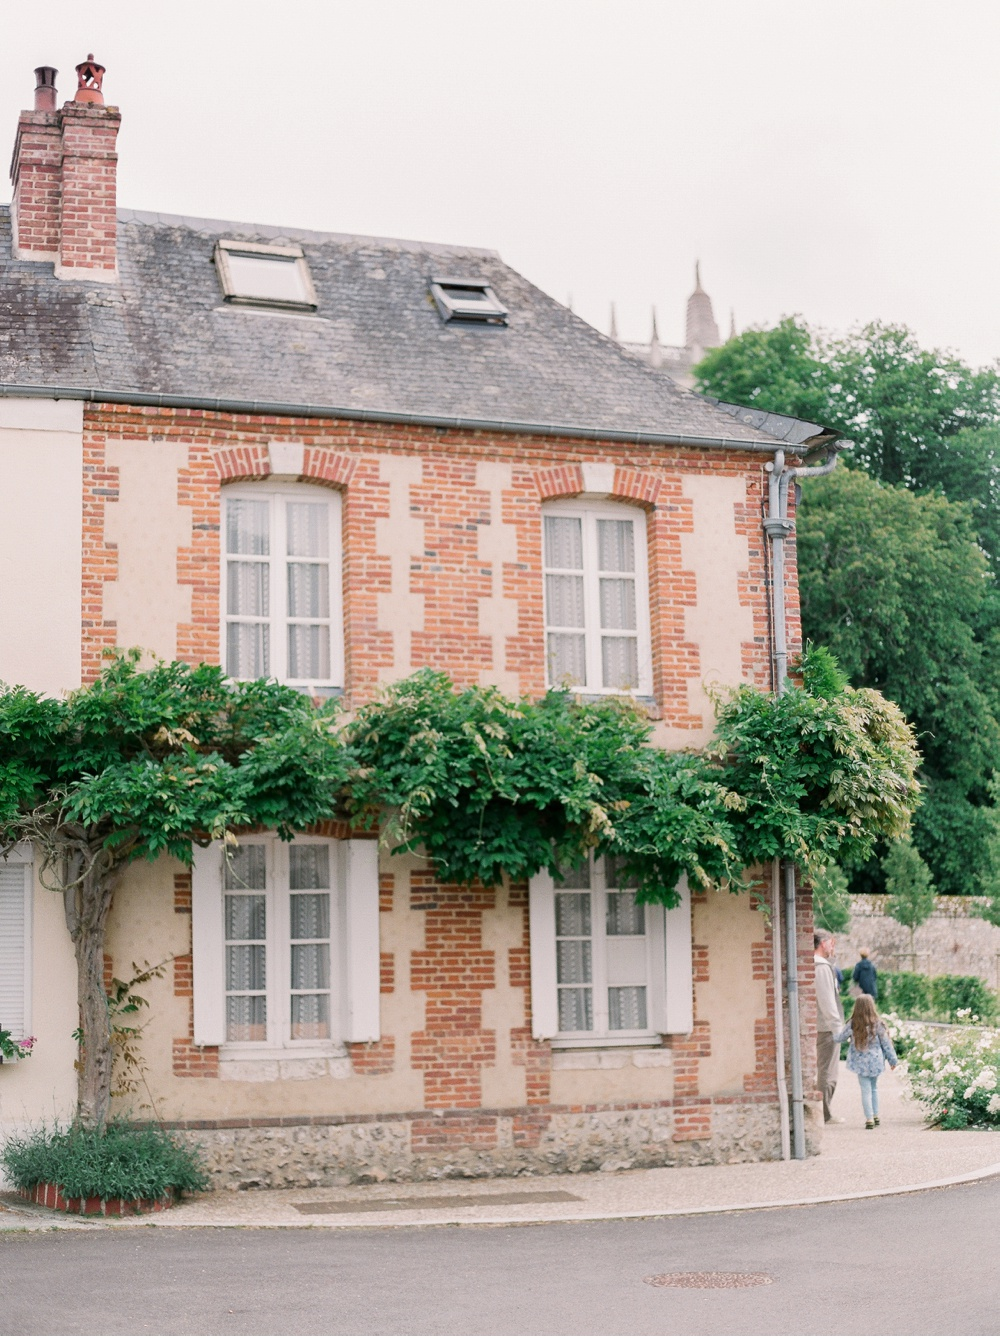 Destination_Wedding_Photographer_France©MadalinaSheldon_0008.jpg